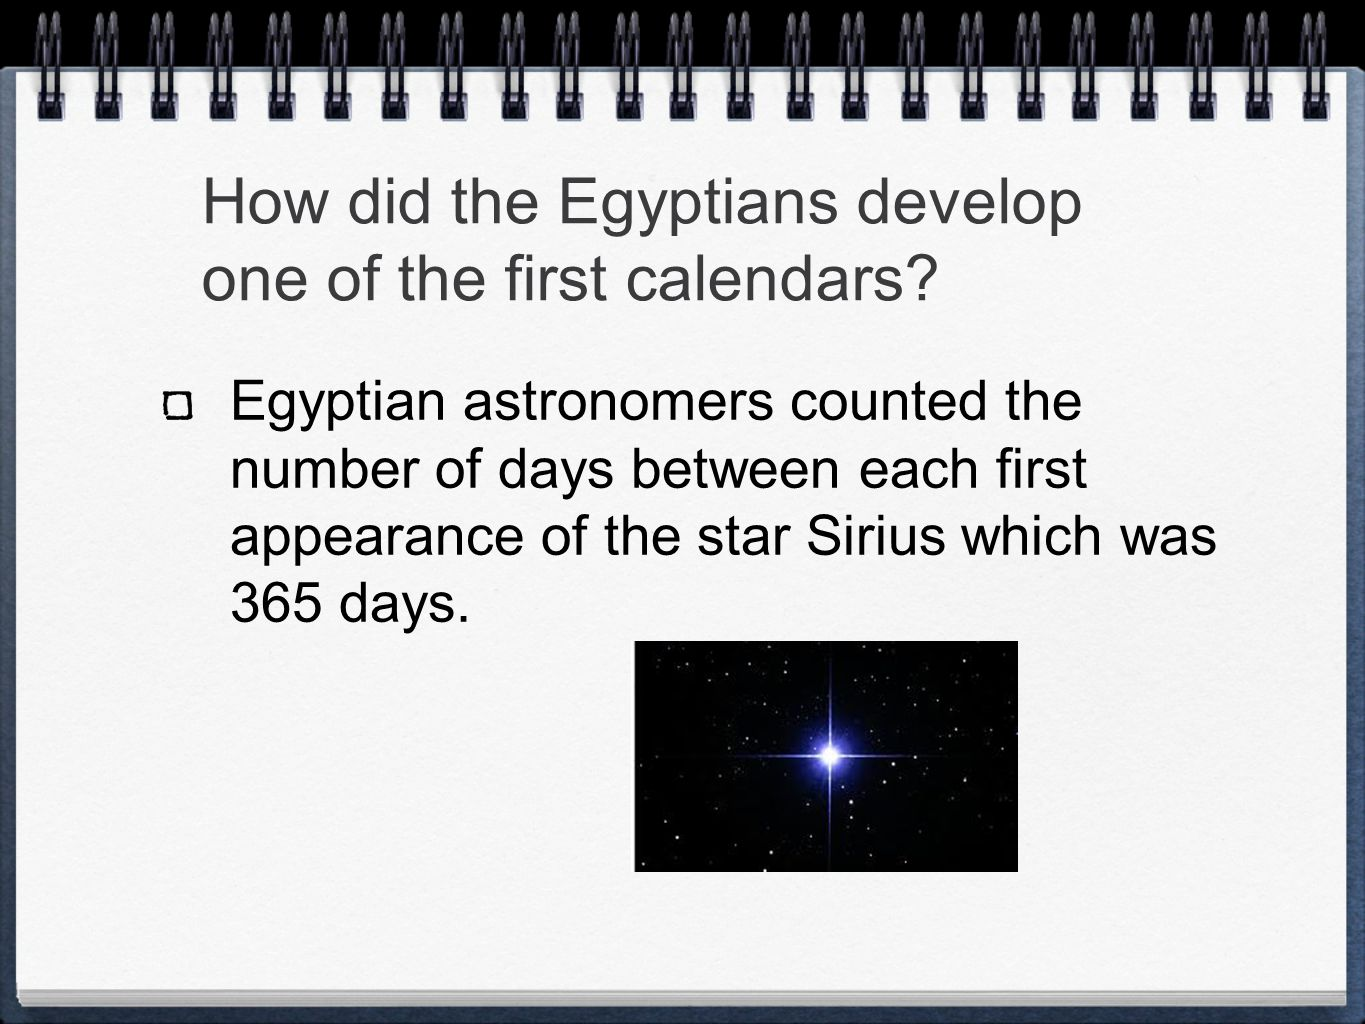 How did the Egyptians develop one of the first calendars? Egyptian astronomers counted the number of days between each first appearance of the star Si